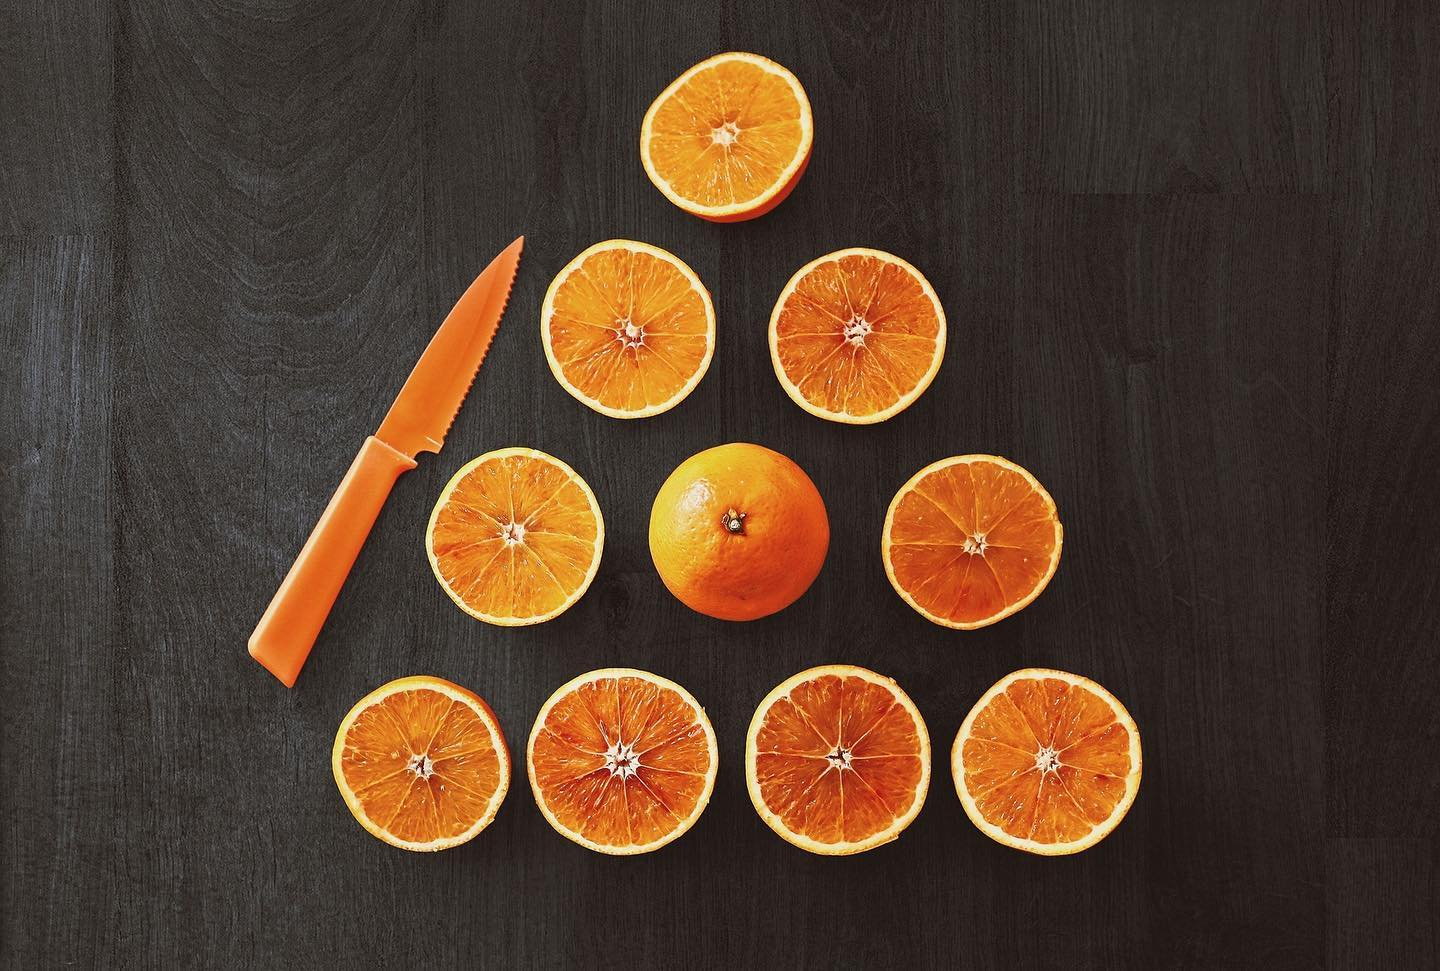 Oranges are full of vitamin C and rich in antioxidants, both of which help reduce the risk of glaucoma, age-related macular degeneration and cataracts. Oranges are also great stocking stuffers! Who else always gets one in there stocking?! #eyepractice #rockwoodoptometrist #guelphoptometrist #rockwoodoptometry #guelphoptometry #vitaminC